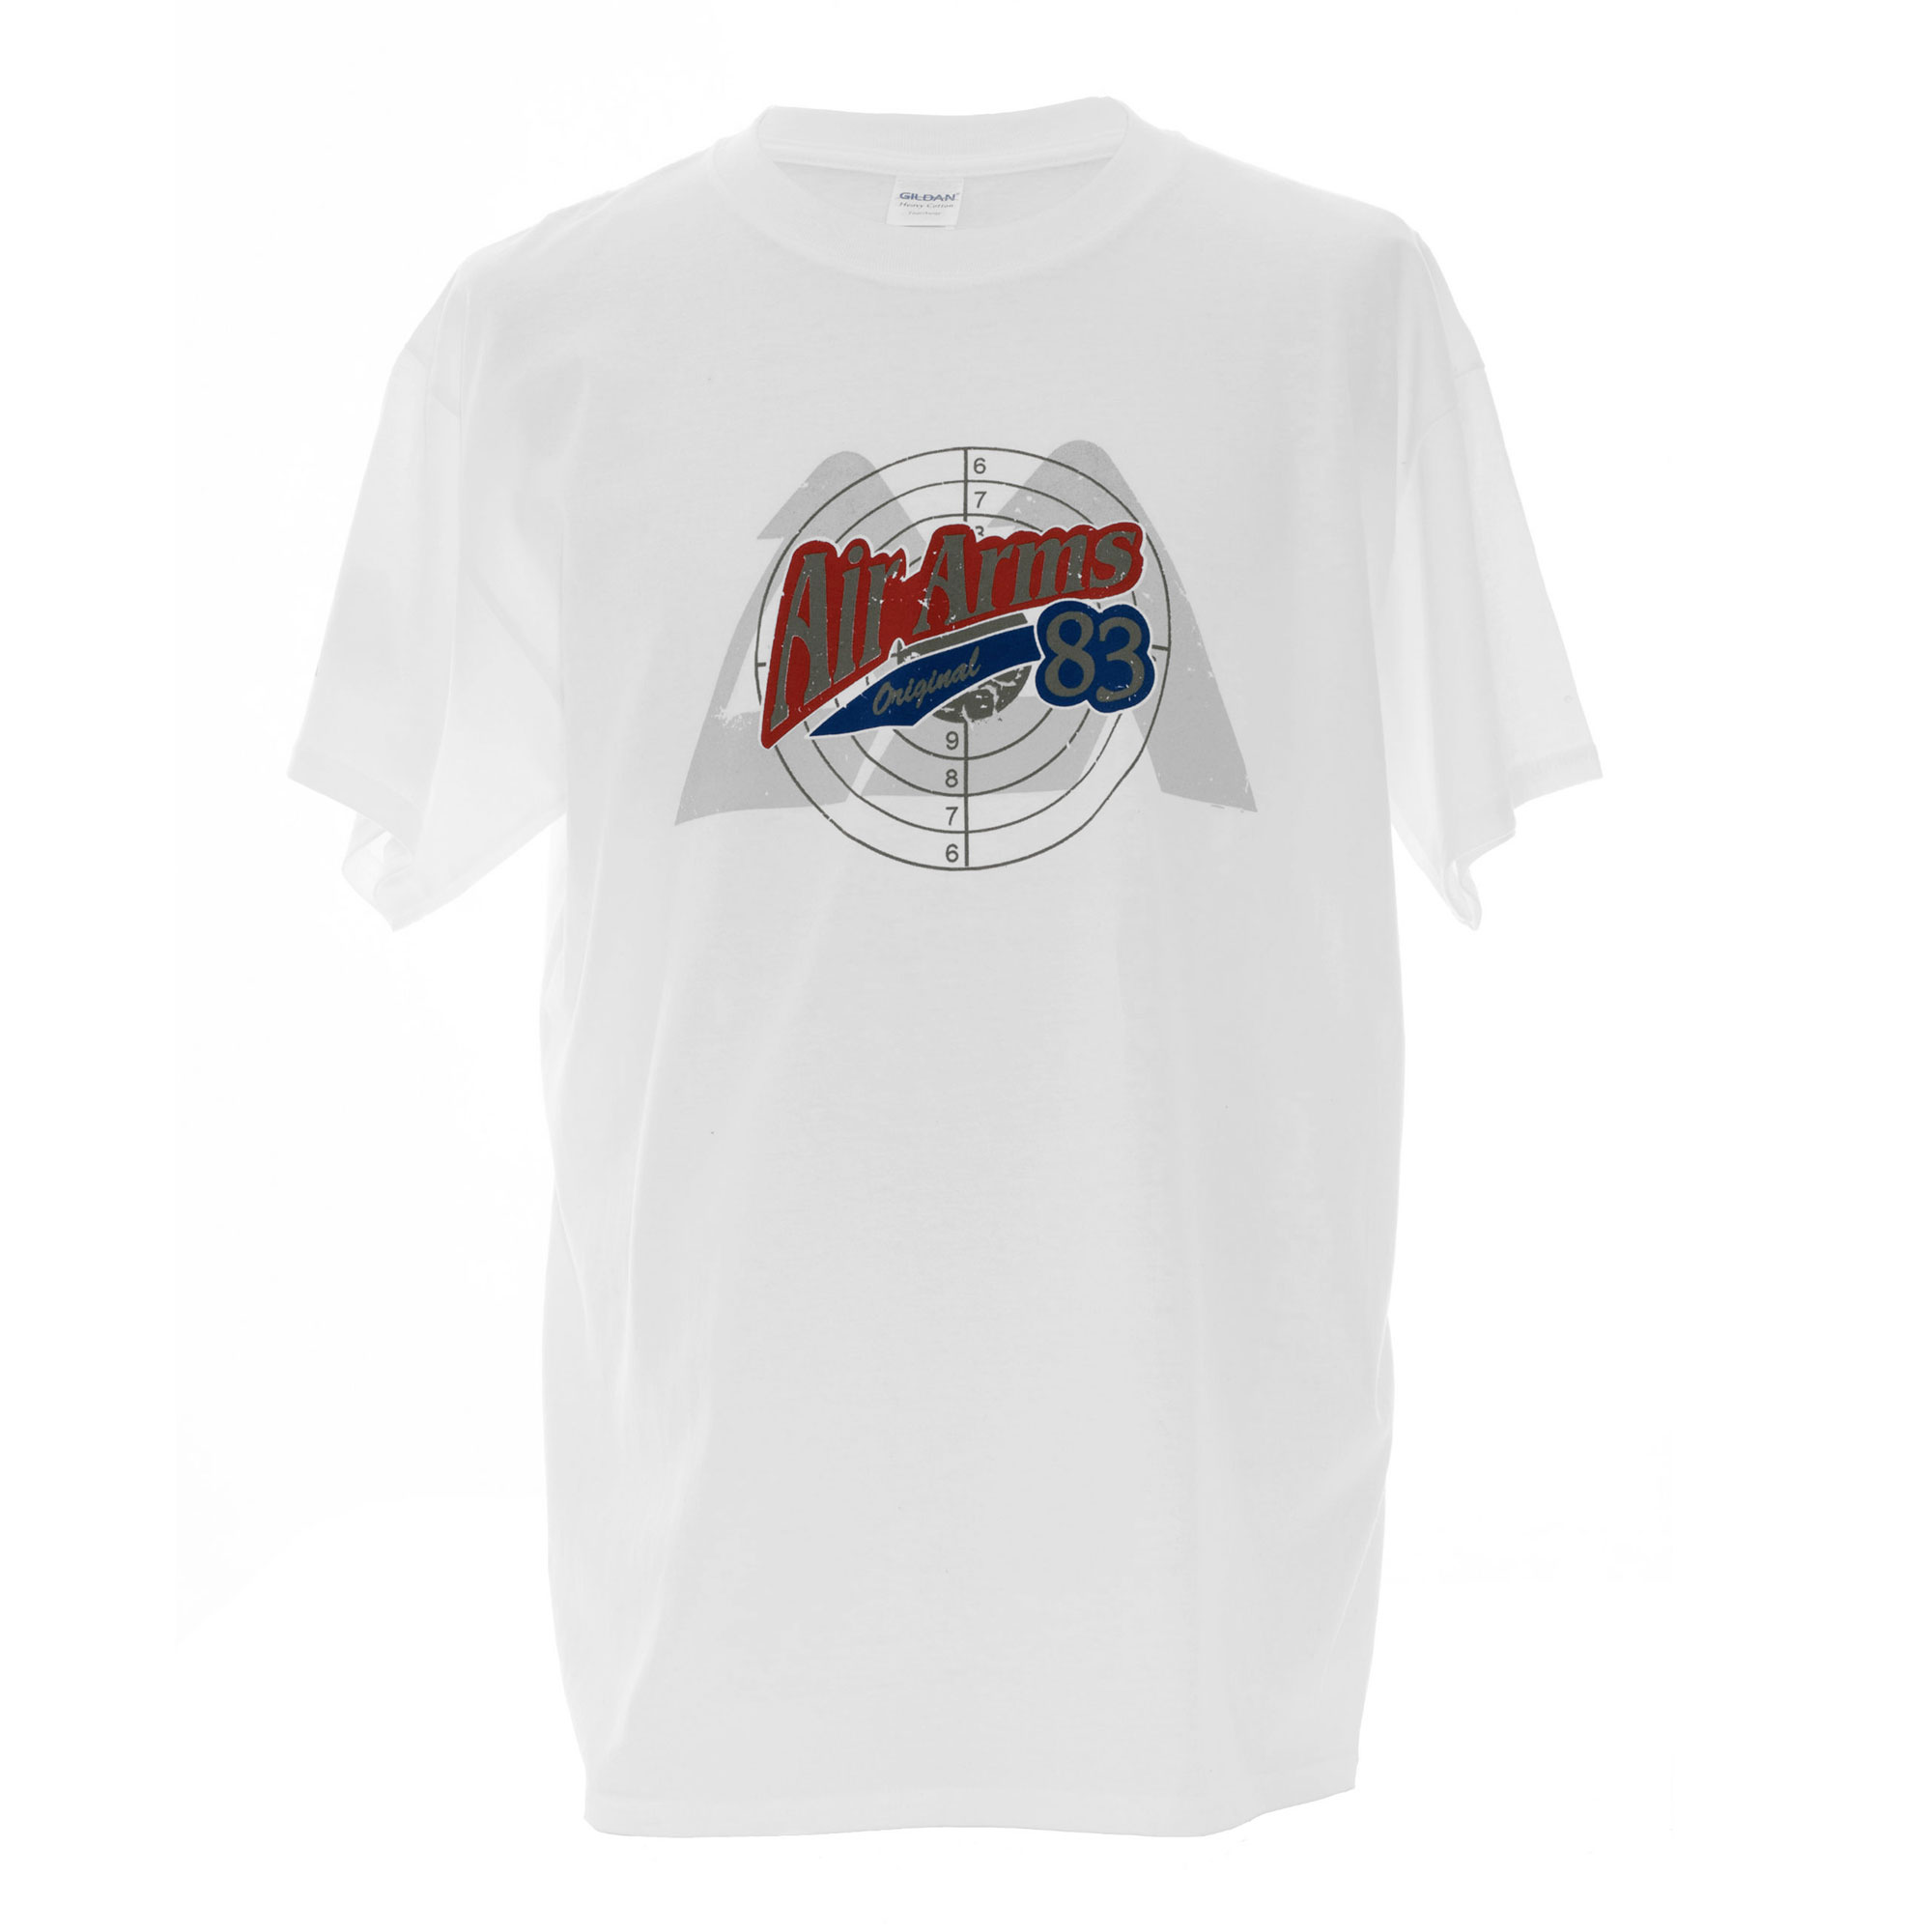 Air Arms '83 T-Shirt - White